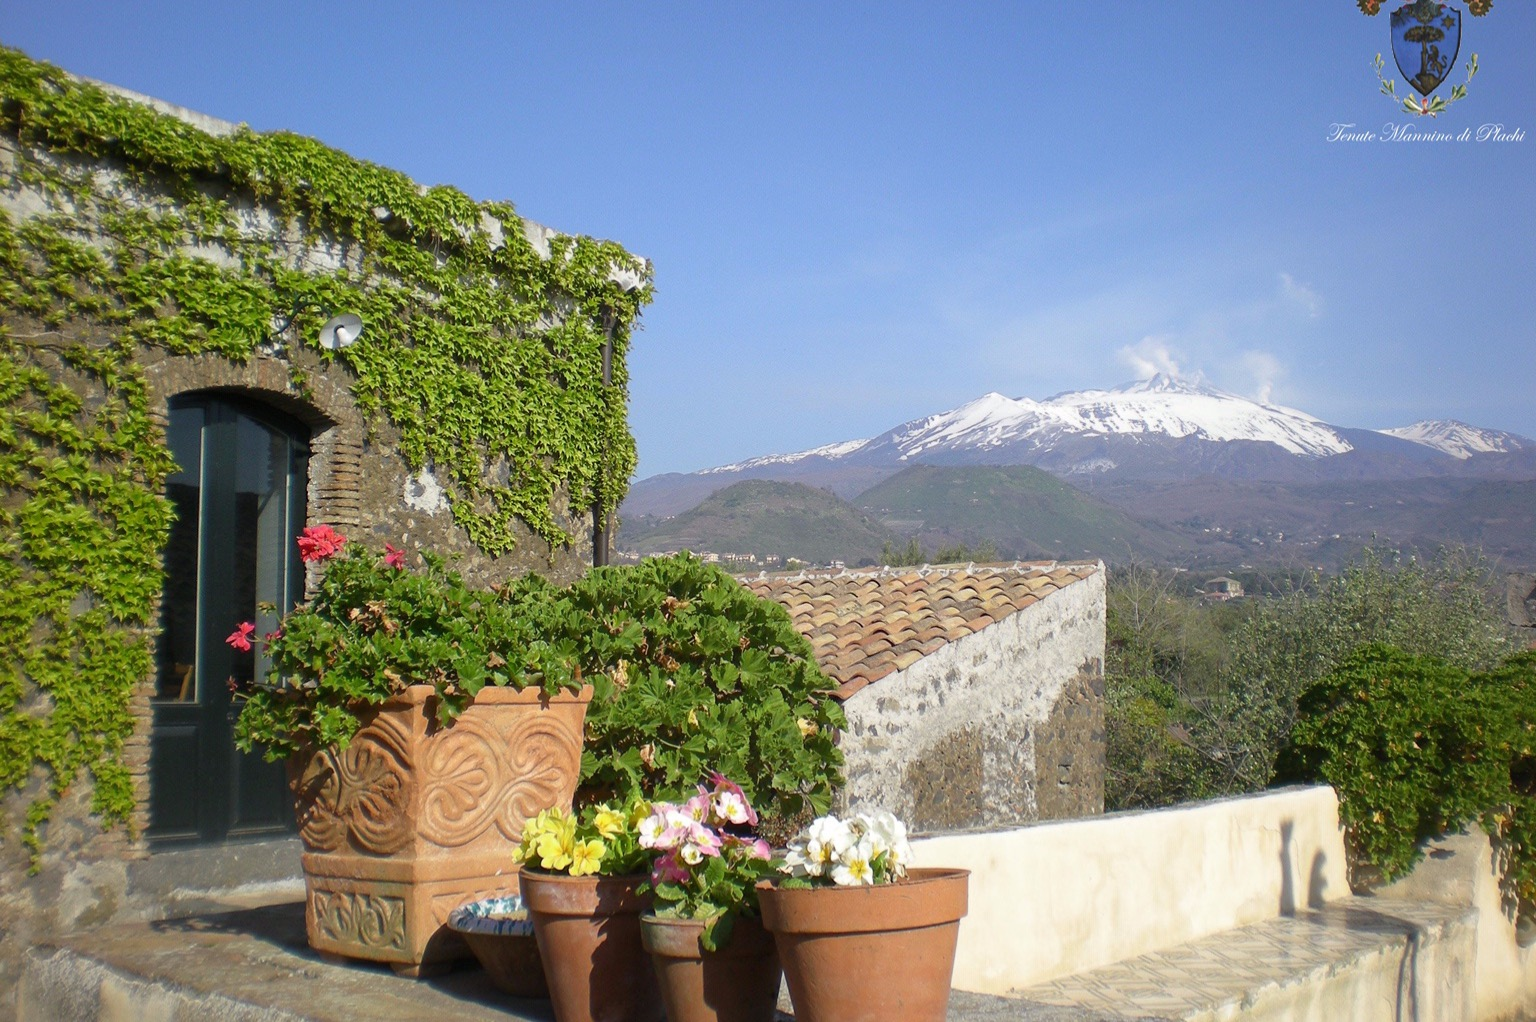 ETNA AND WINE TASTING